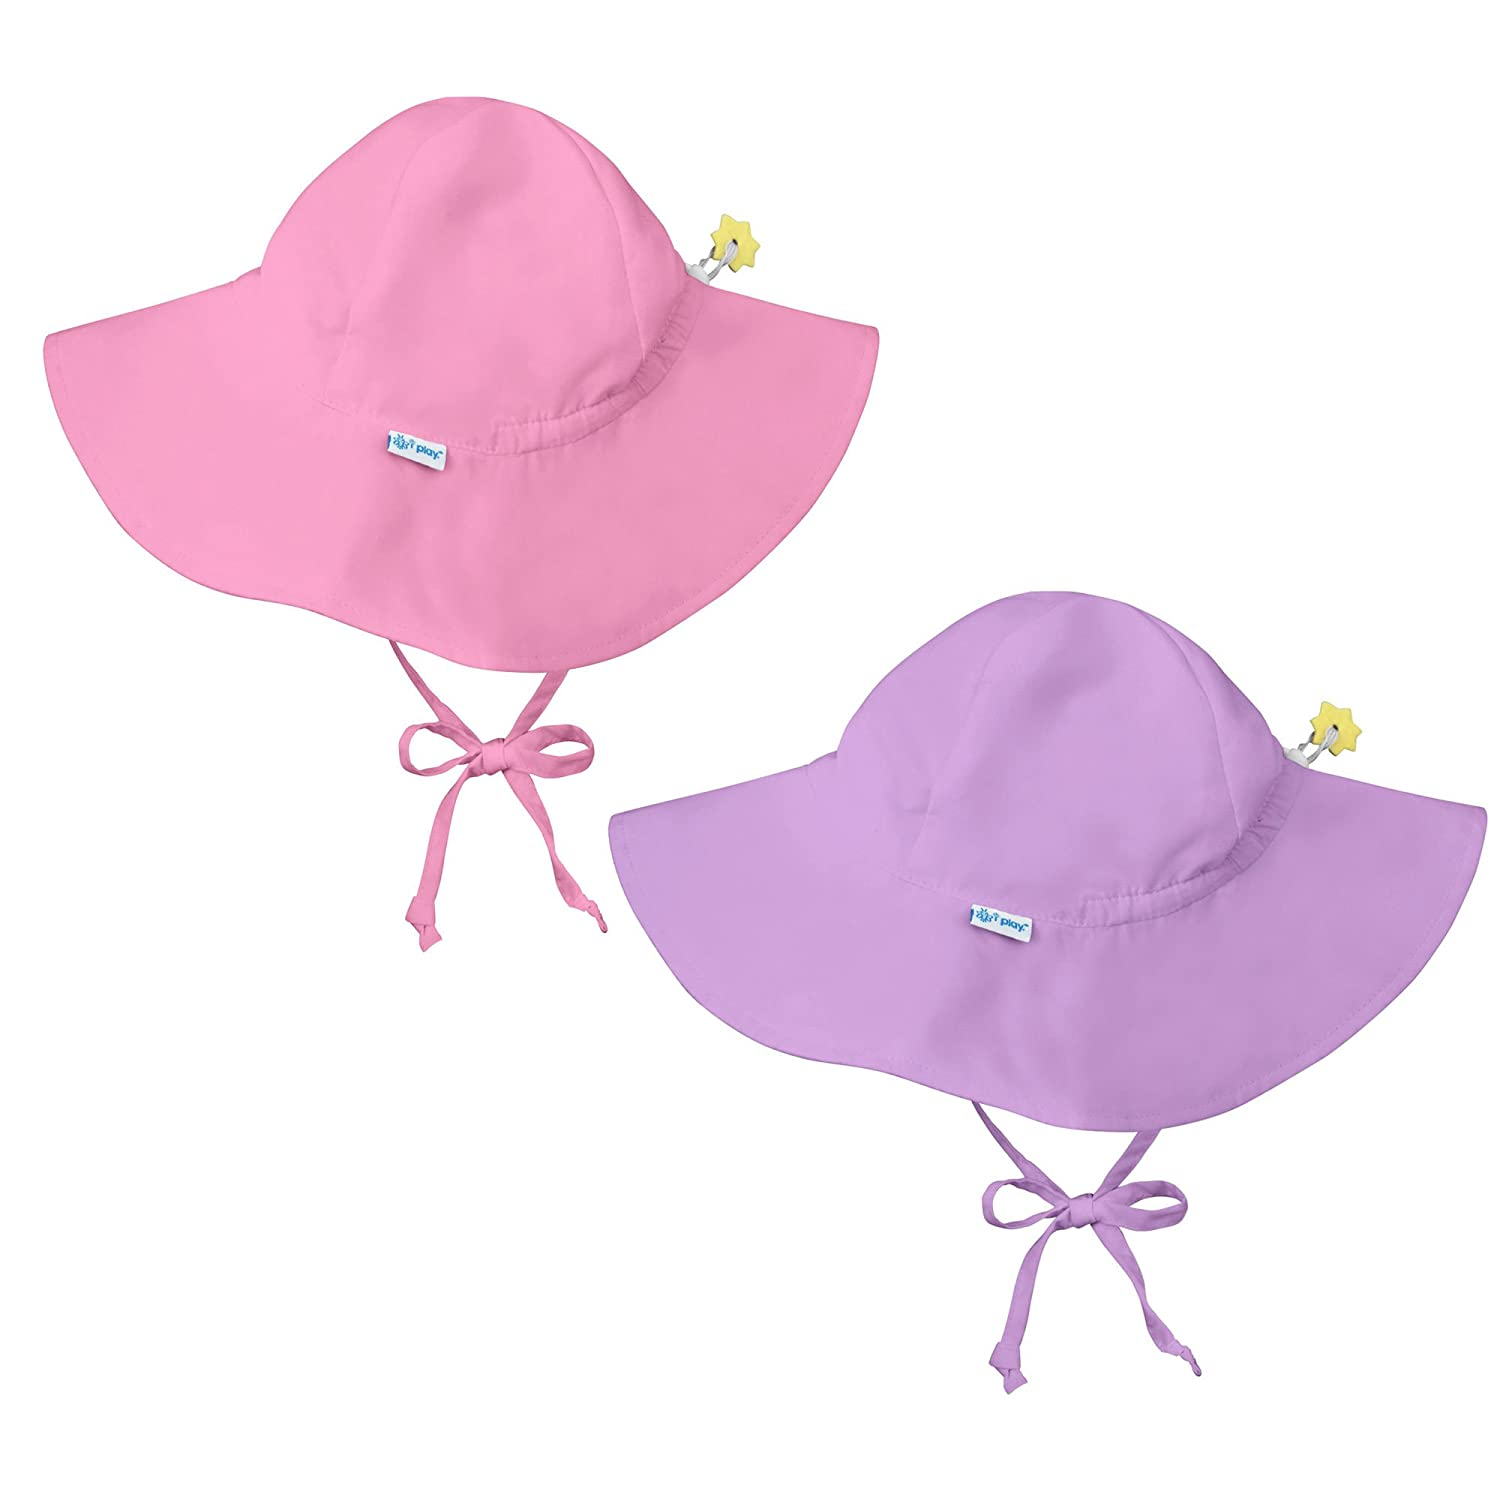 6ba123b0320 Amazon.com  i play. 2 PK UPF 50+ Sun Protection Wide Brim Baby Toddler Sun  Hats Beach Hats  Clothing